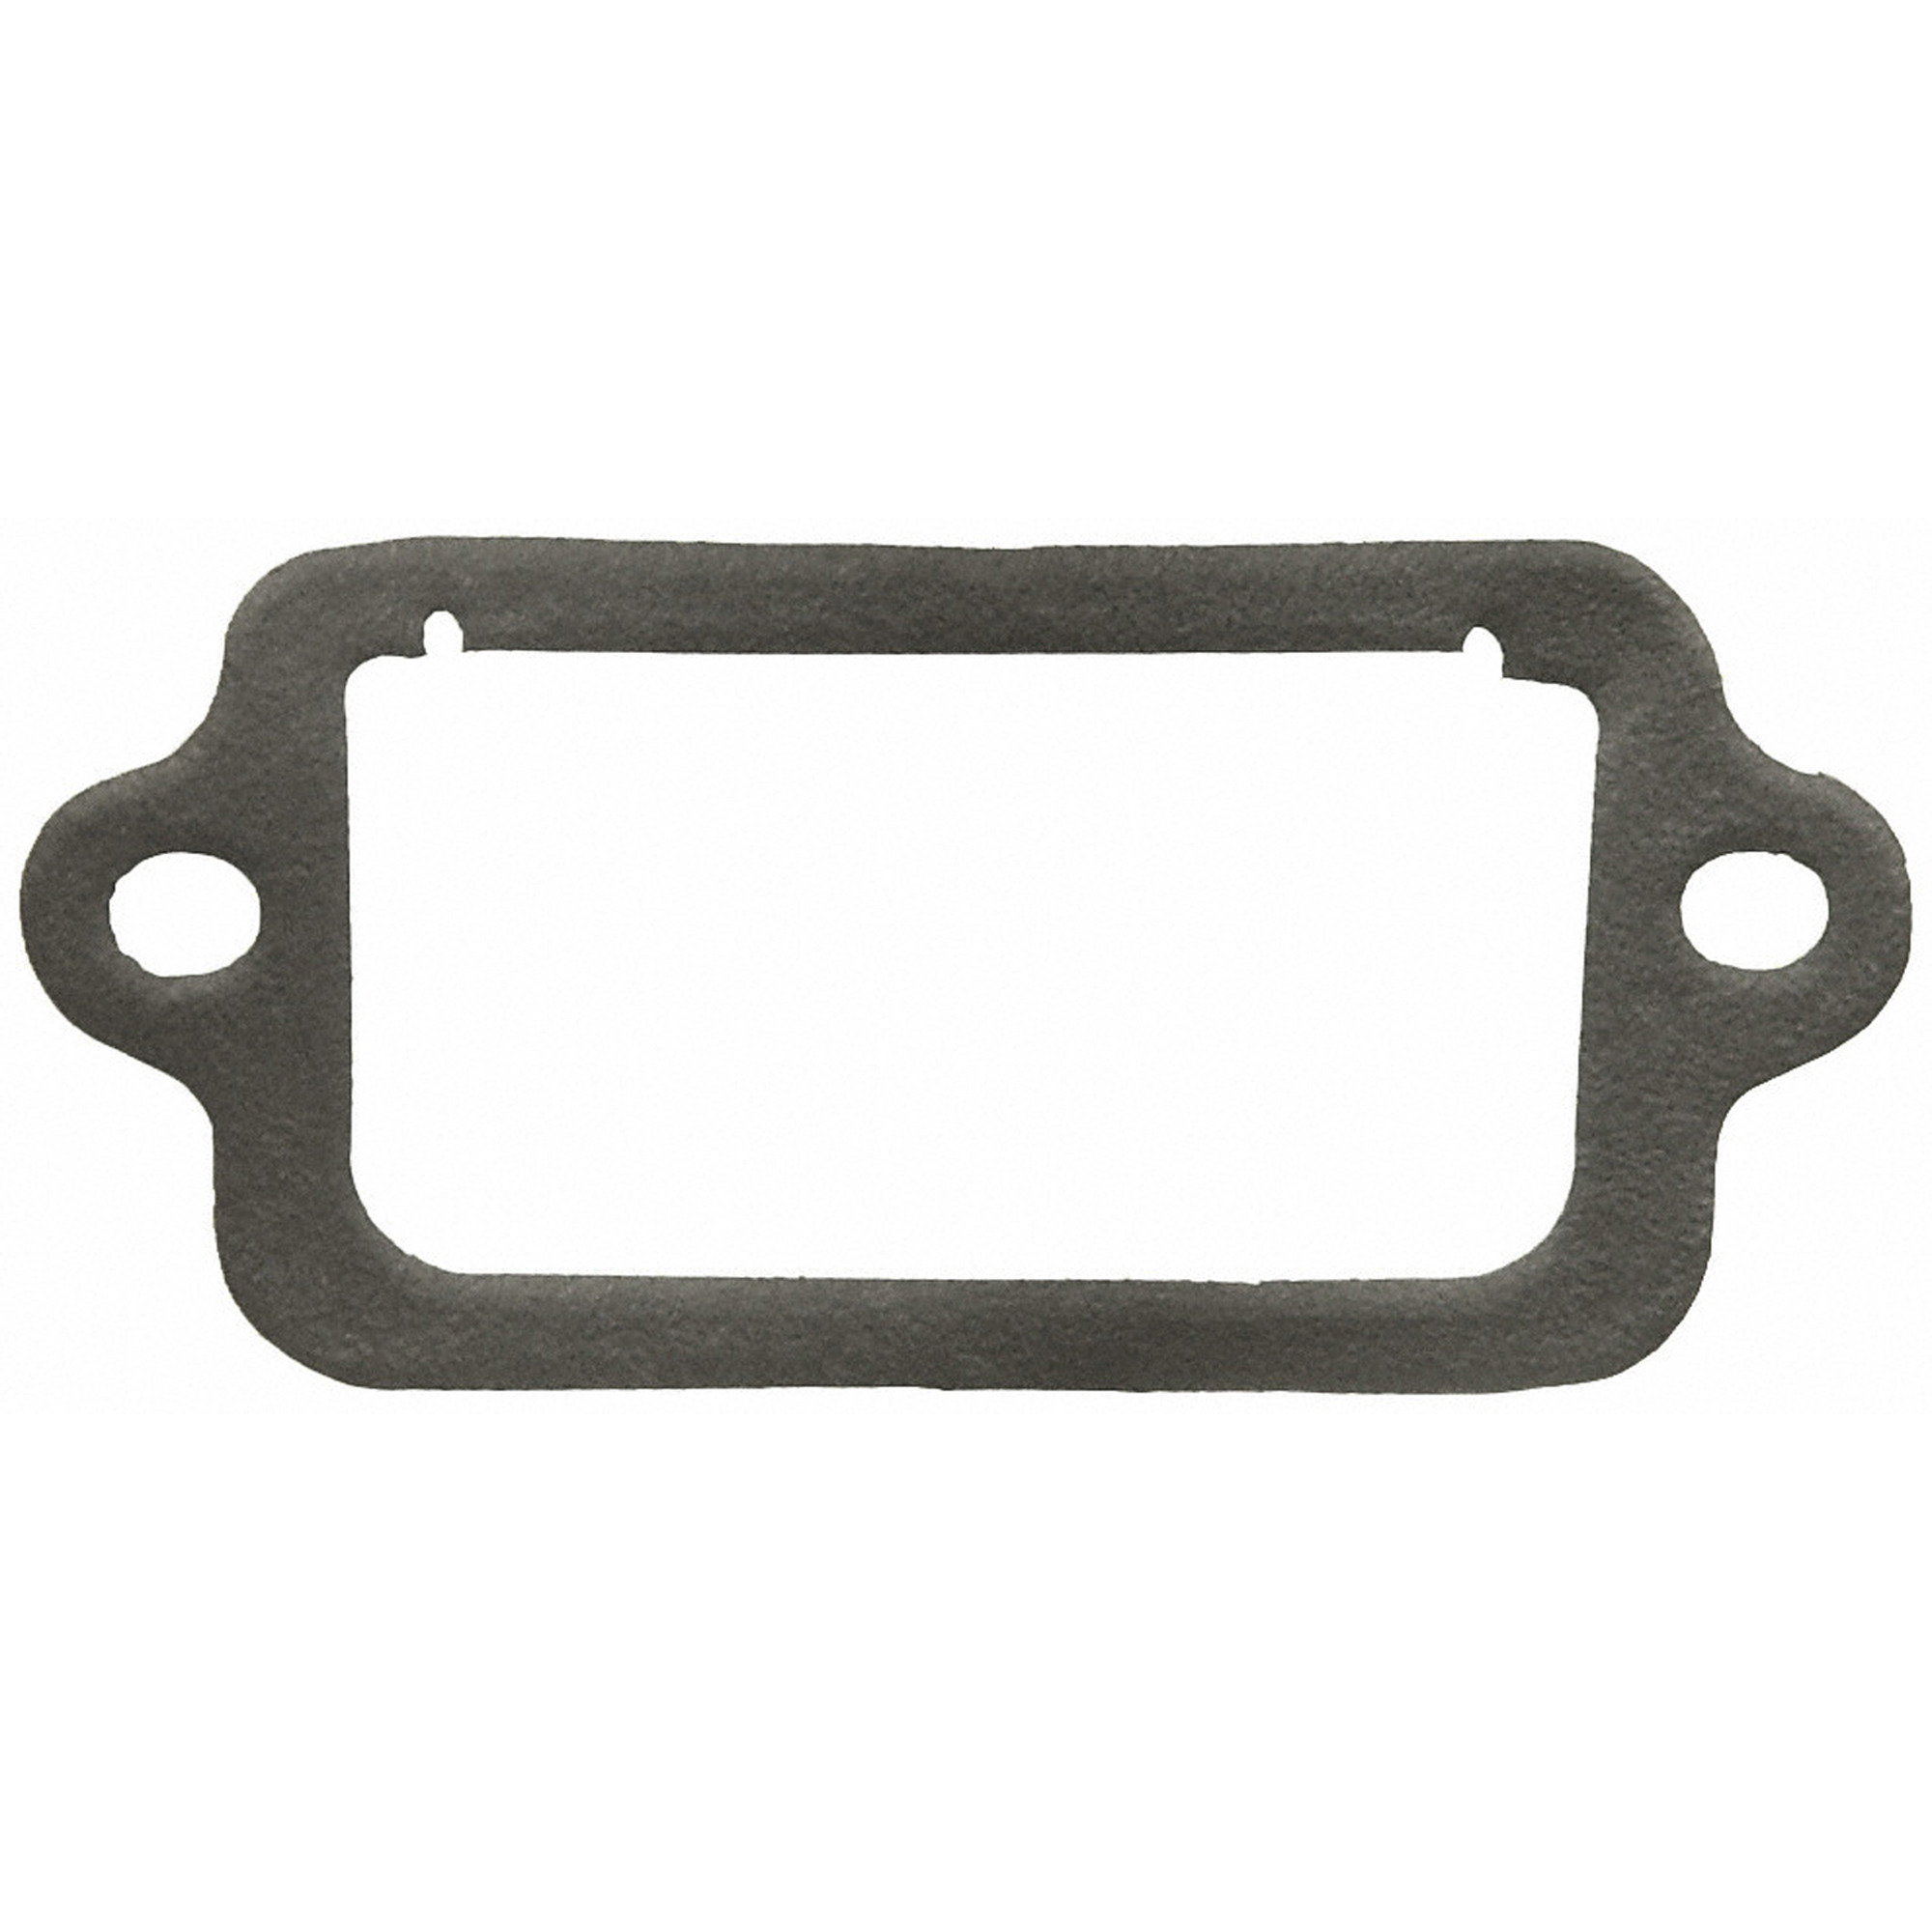 Secondary Air Injection Pipe Gasket